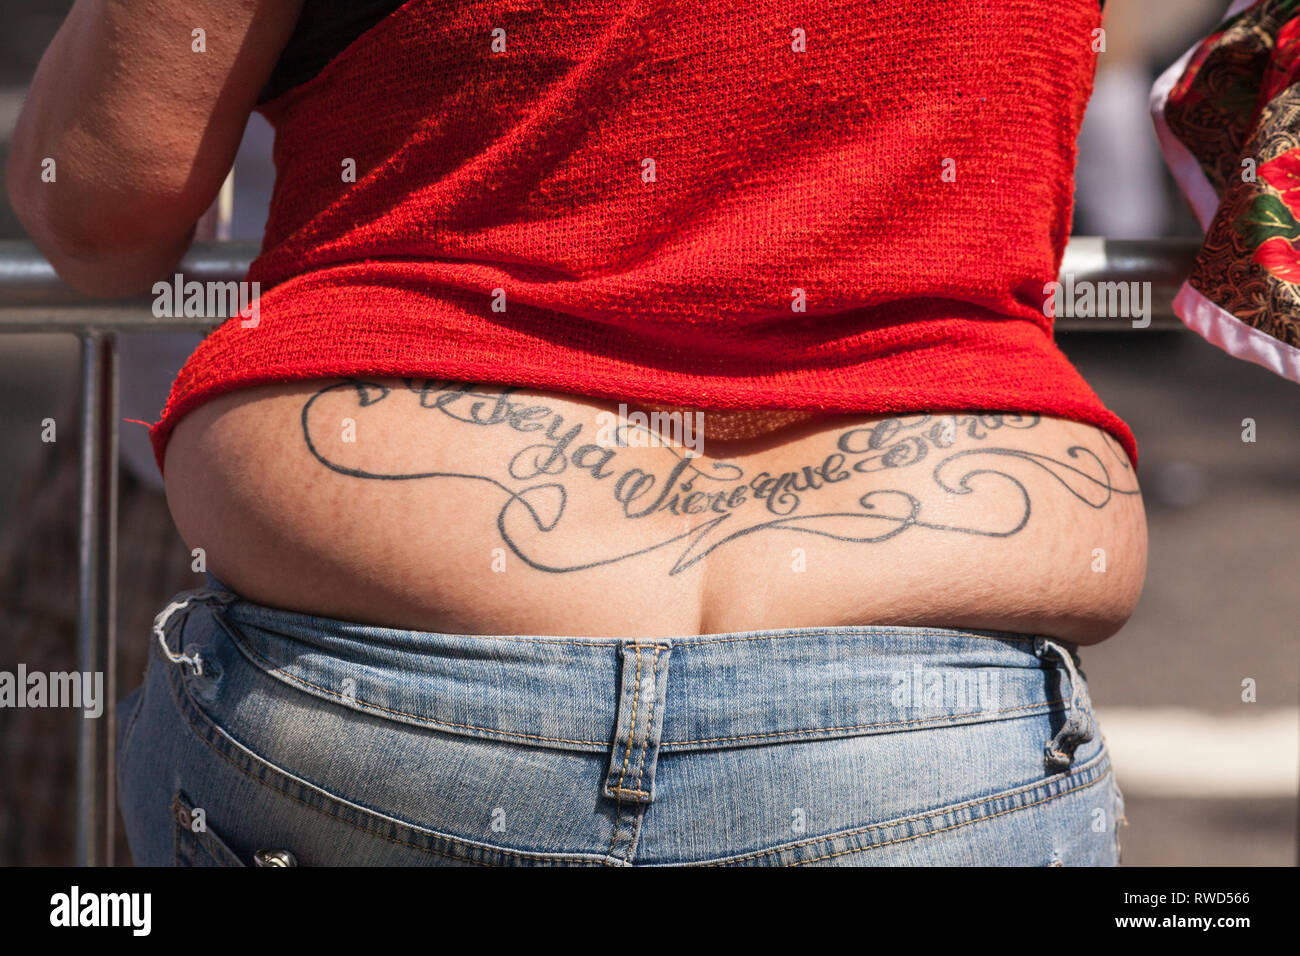 fat hangs as a woman wears her jeans tight at the The National Puerto Rican Day Parade in New York - Stock Image